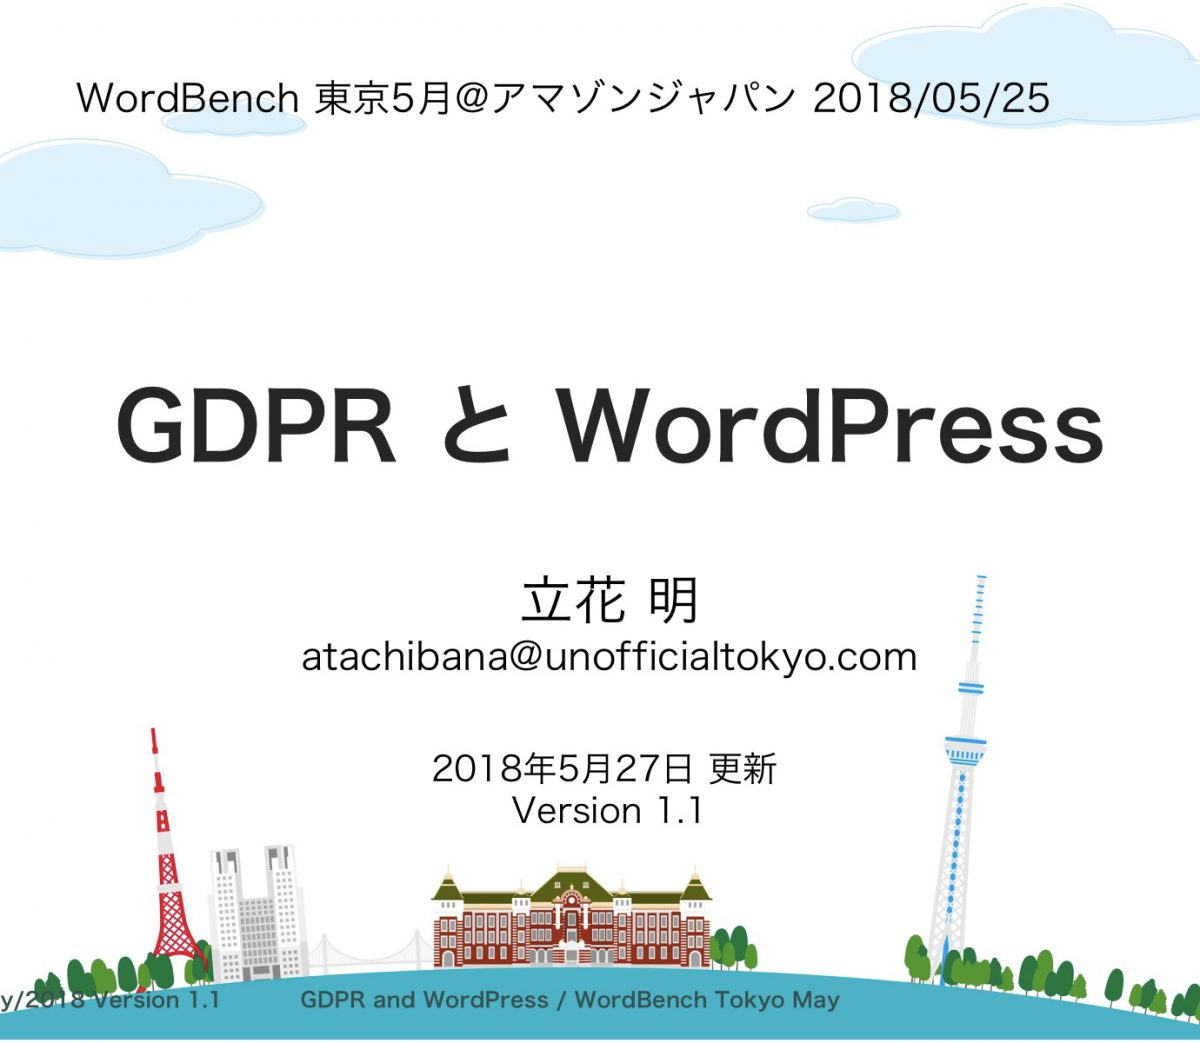 WordBench 東京 5月 LT「GDPR と WordPress」